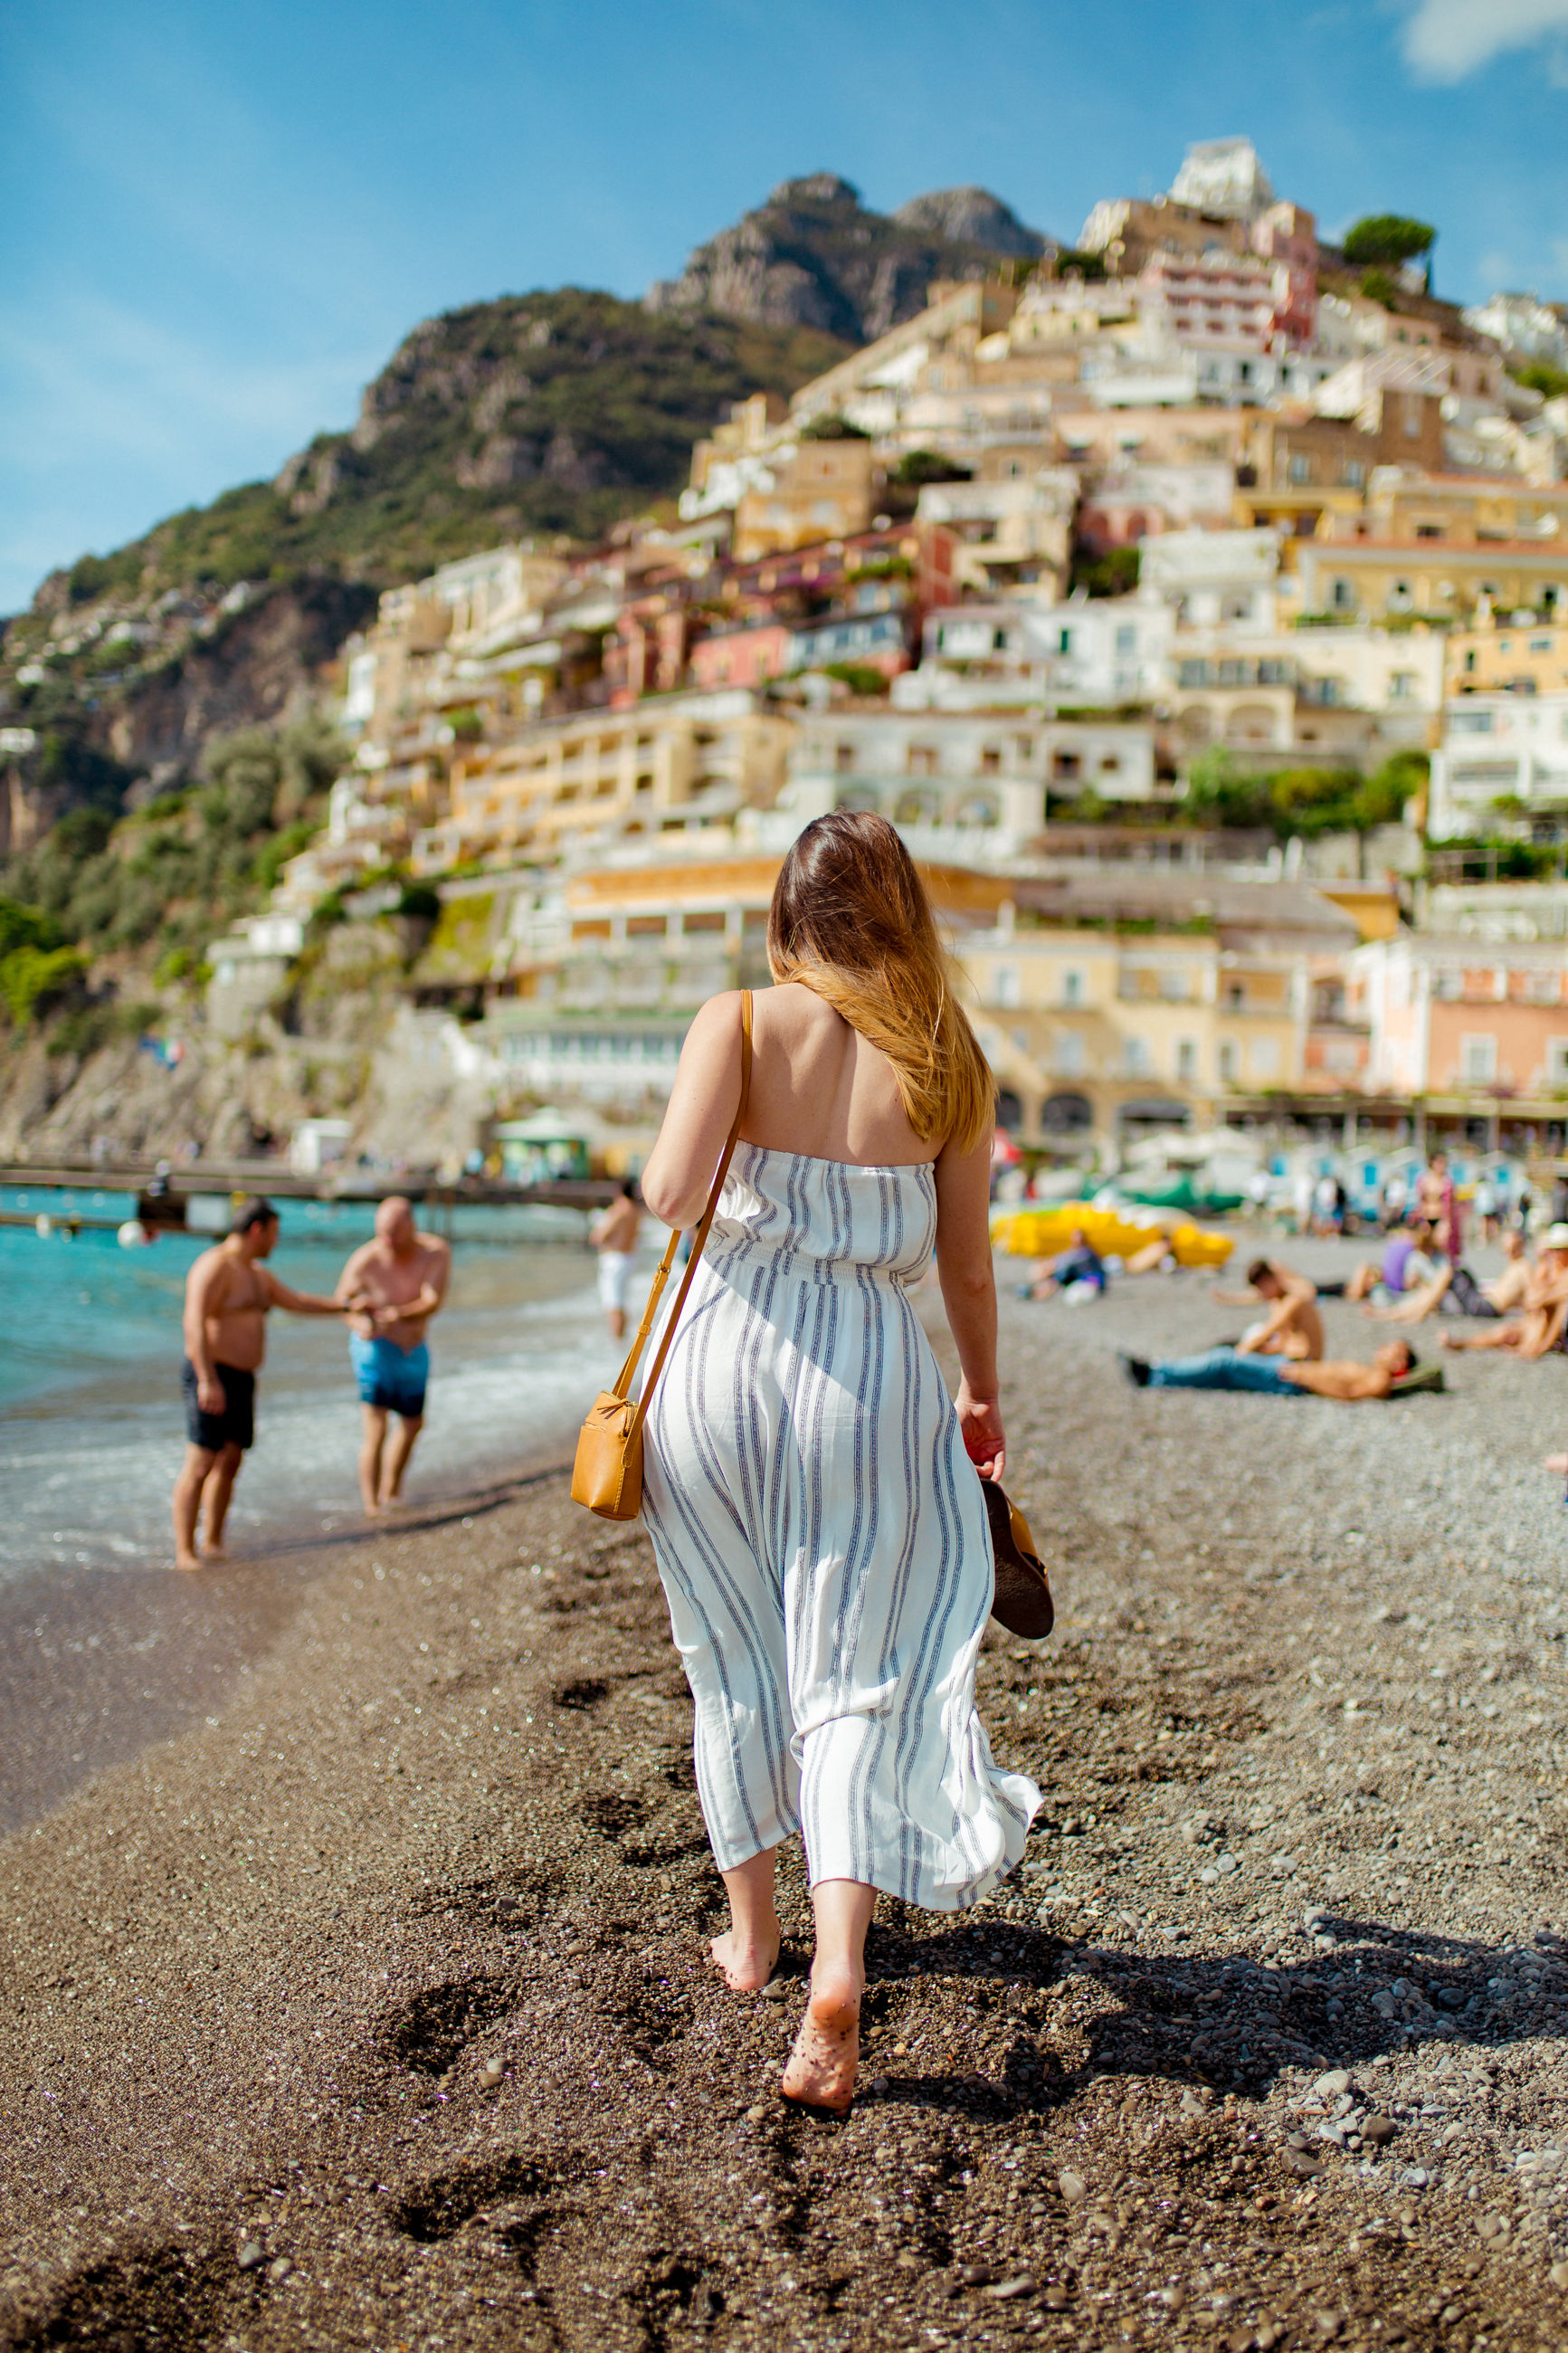 full length, real people, rear view, architecture, leisure activity, women, beach, nature, lifestyles, land, built structure, walking, focus on foreground, day, adult, casual clothing, mountain, water, building exterior, people, outdoors, hairstyle